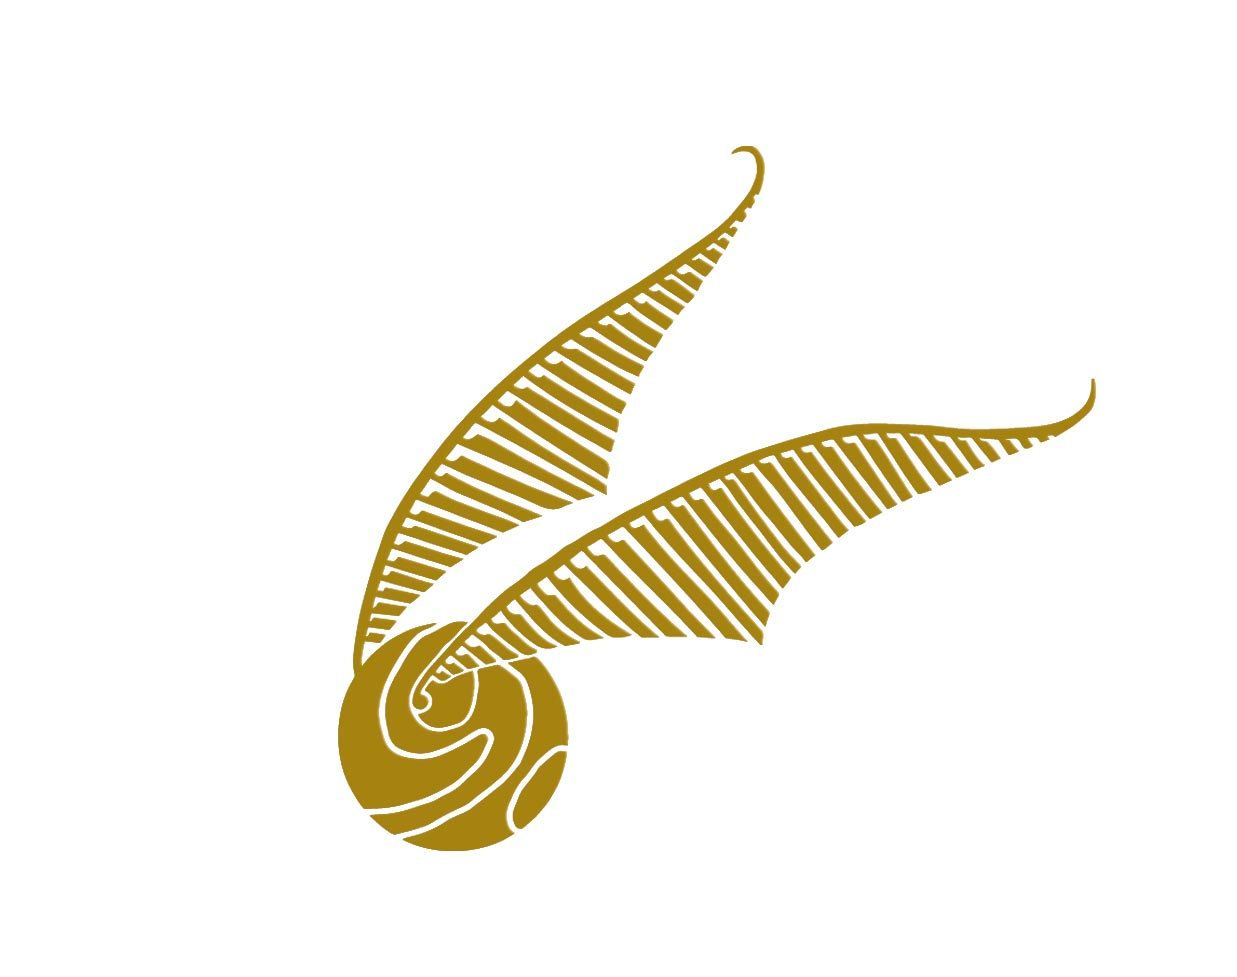 Harry Potter Golden Snitch Png